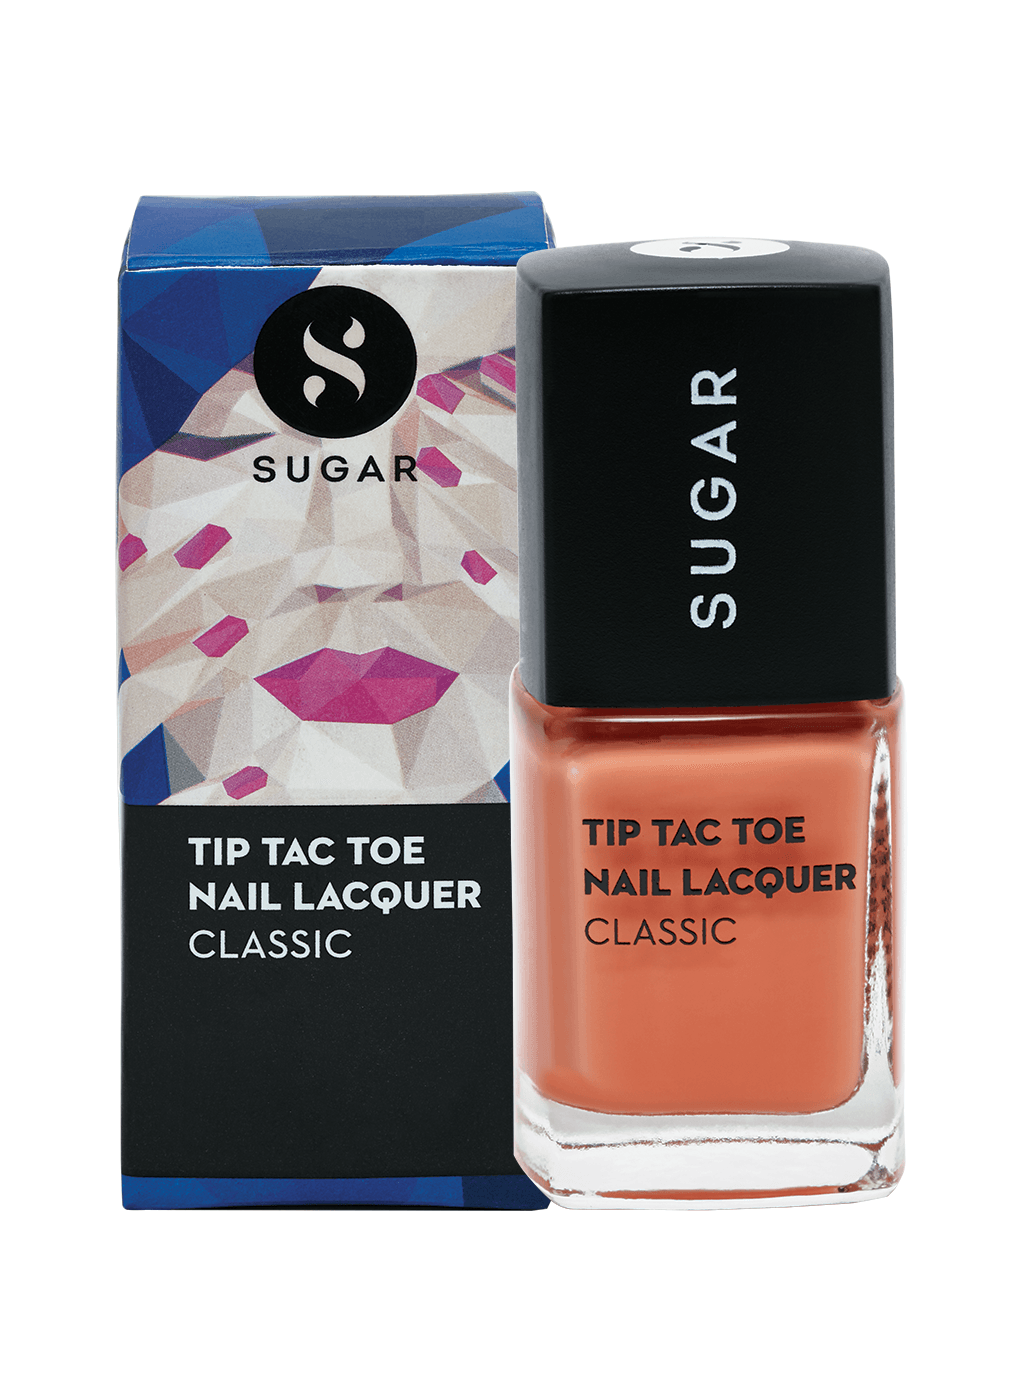 Tip Tac Toe Nail Lacquer - 067 Fan The Flame (Pastel Orange)